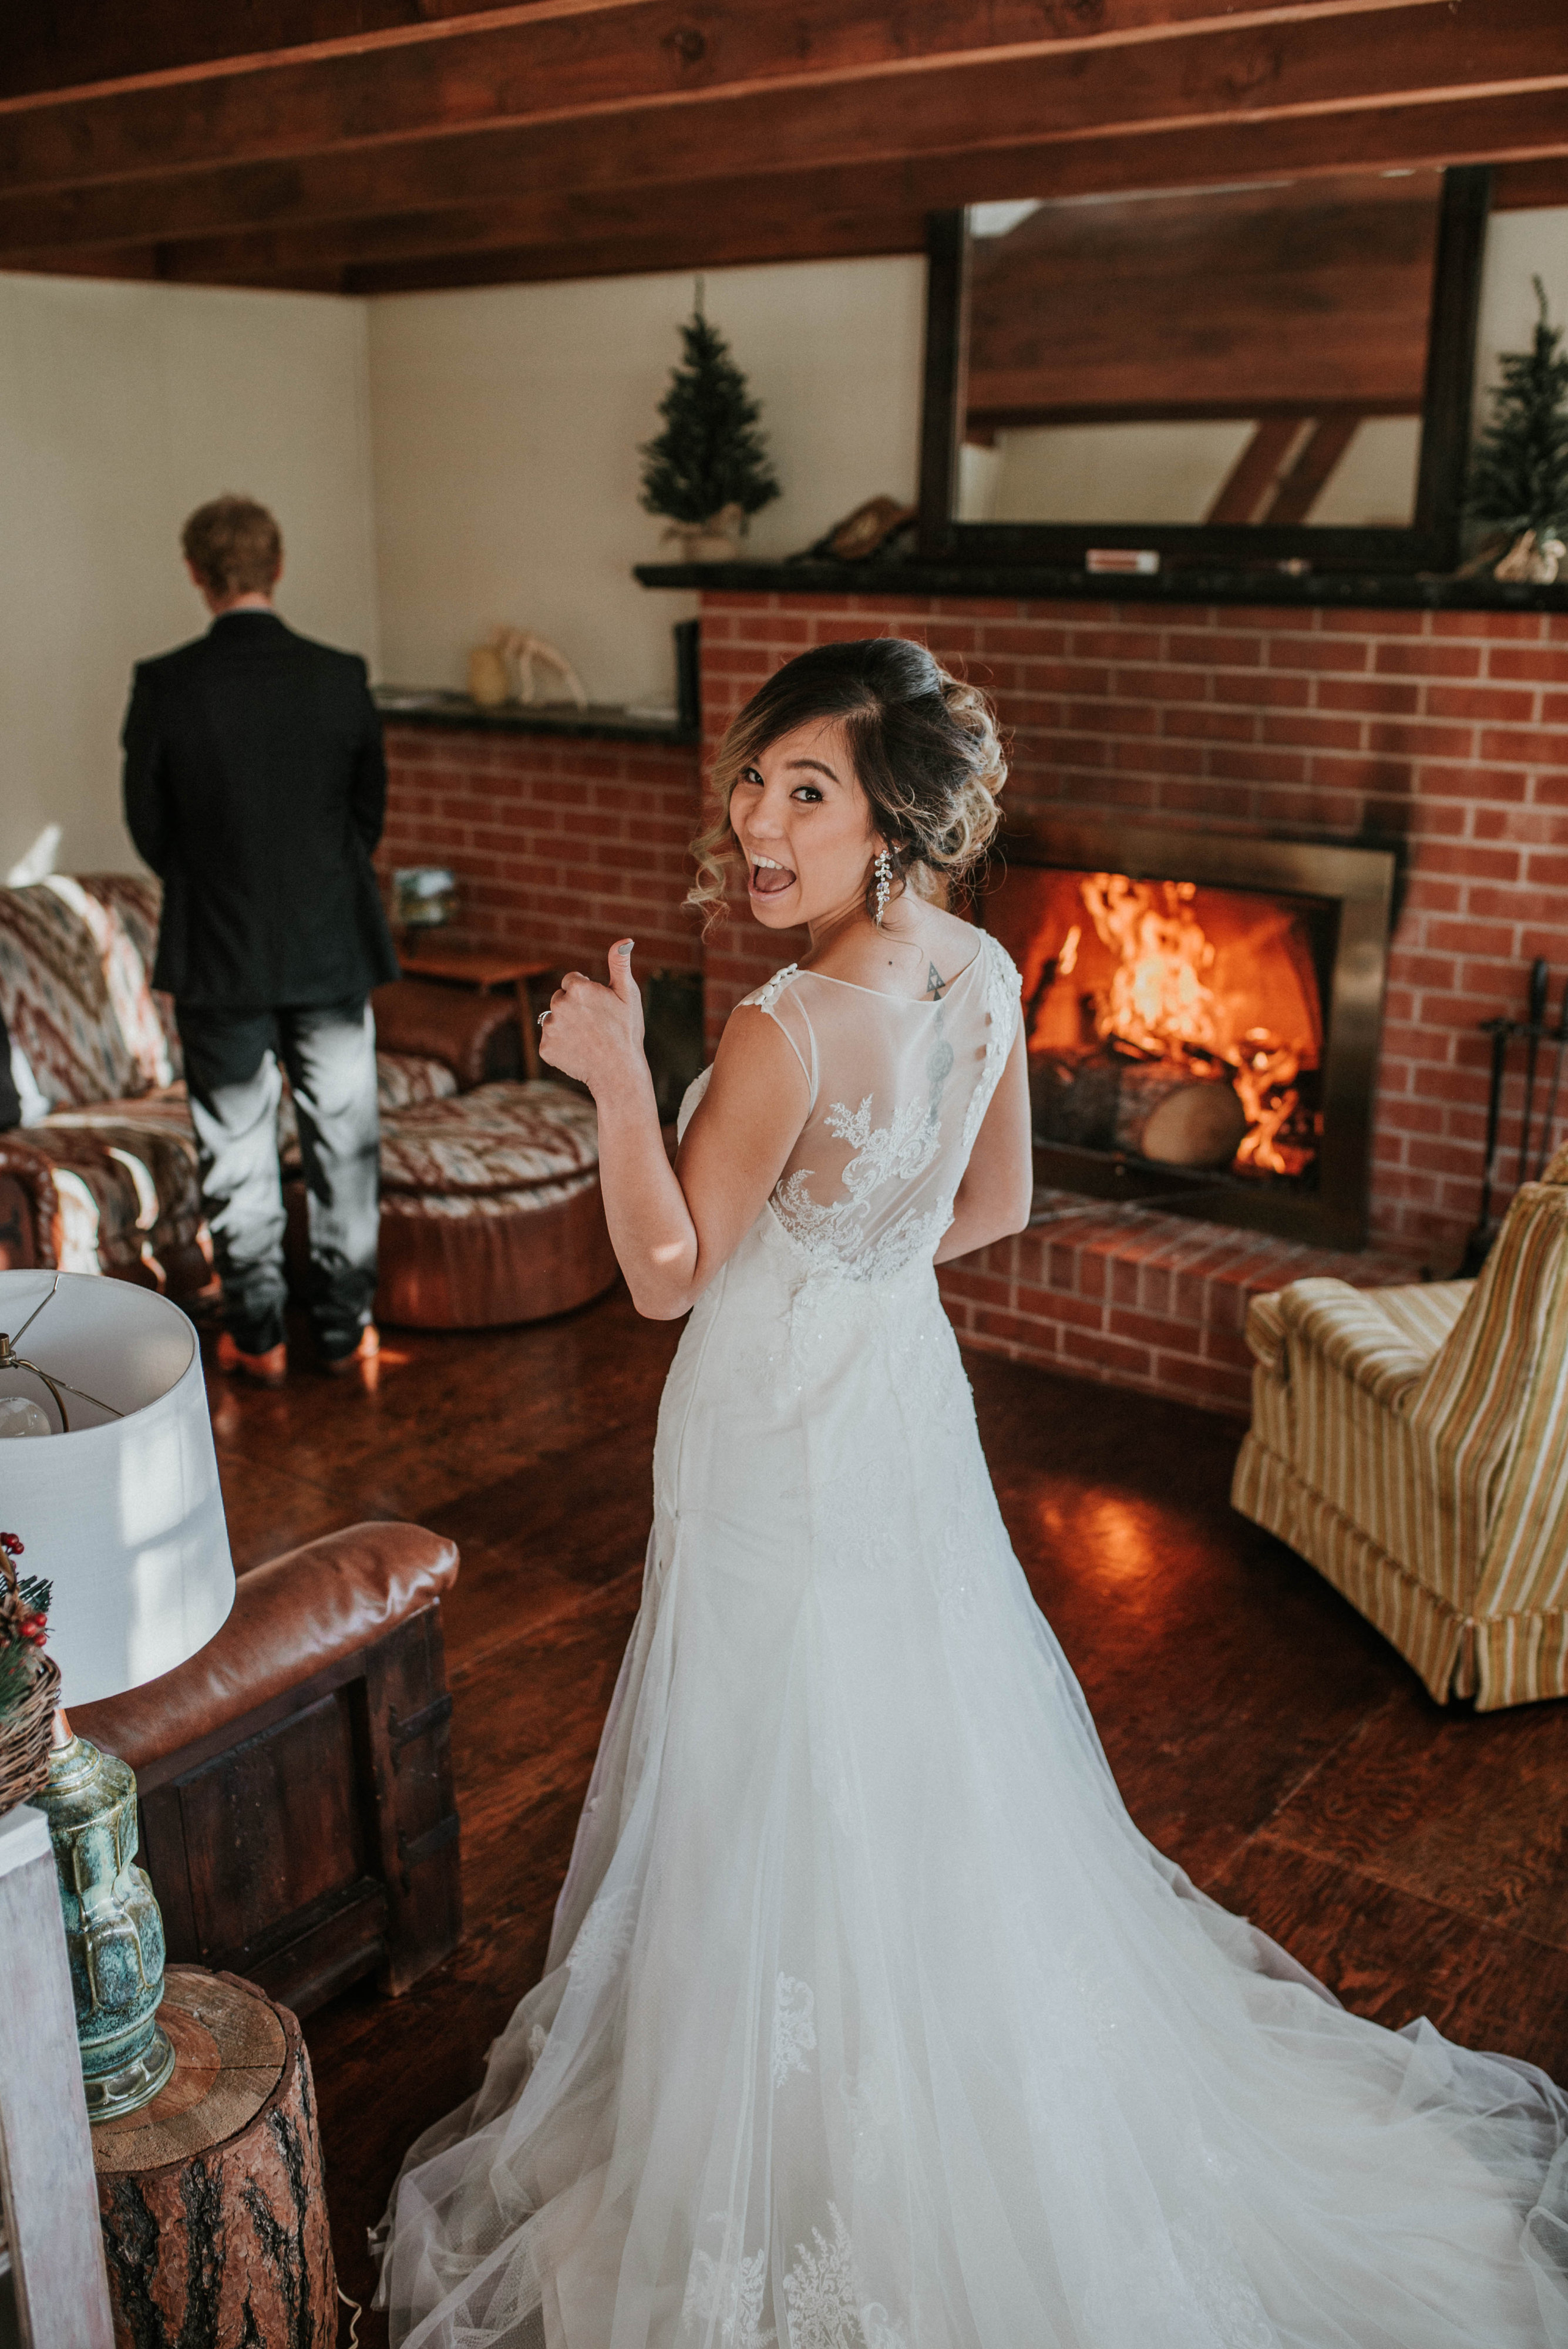 The Powder Room/Tucson hair and makeup | Blog